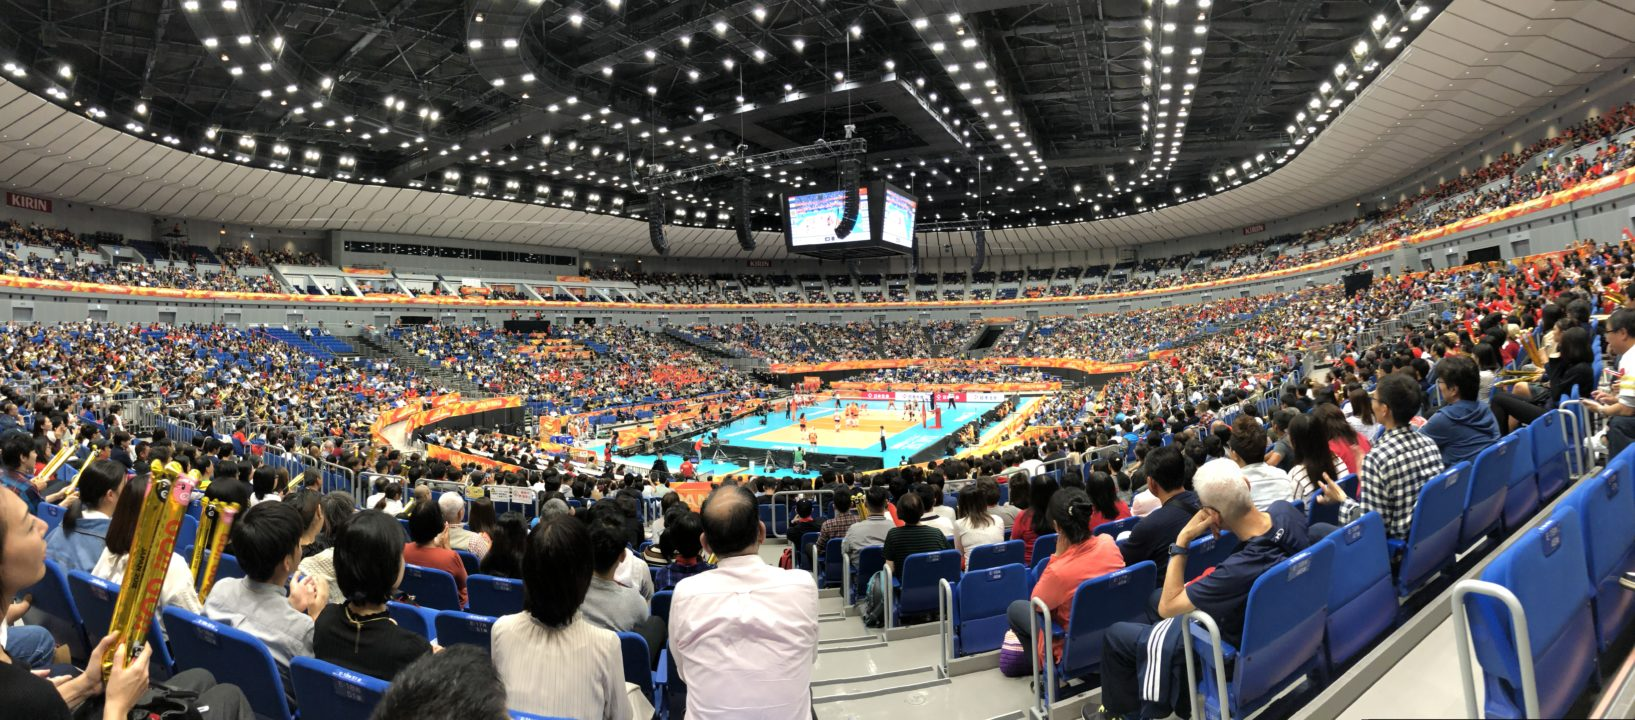 Fan's Eye View from the Women's World Championship Final